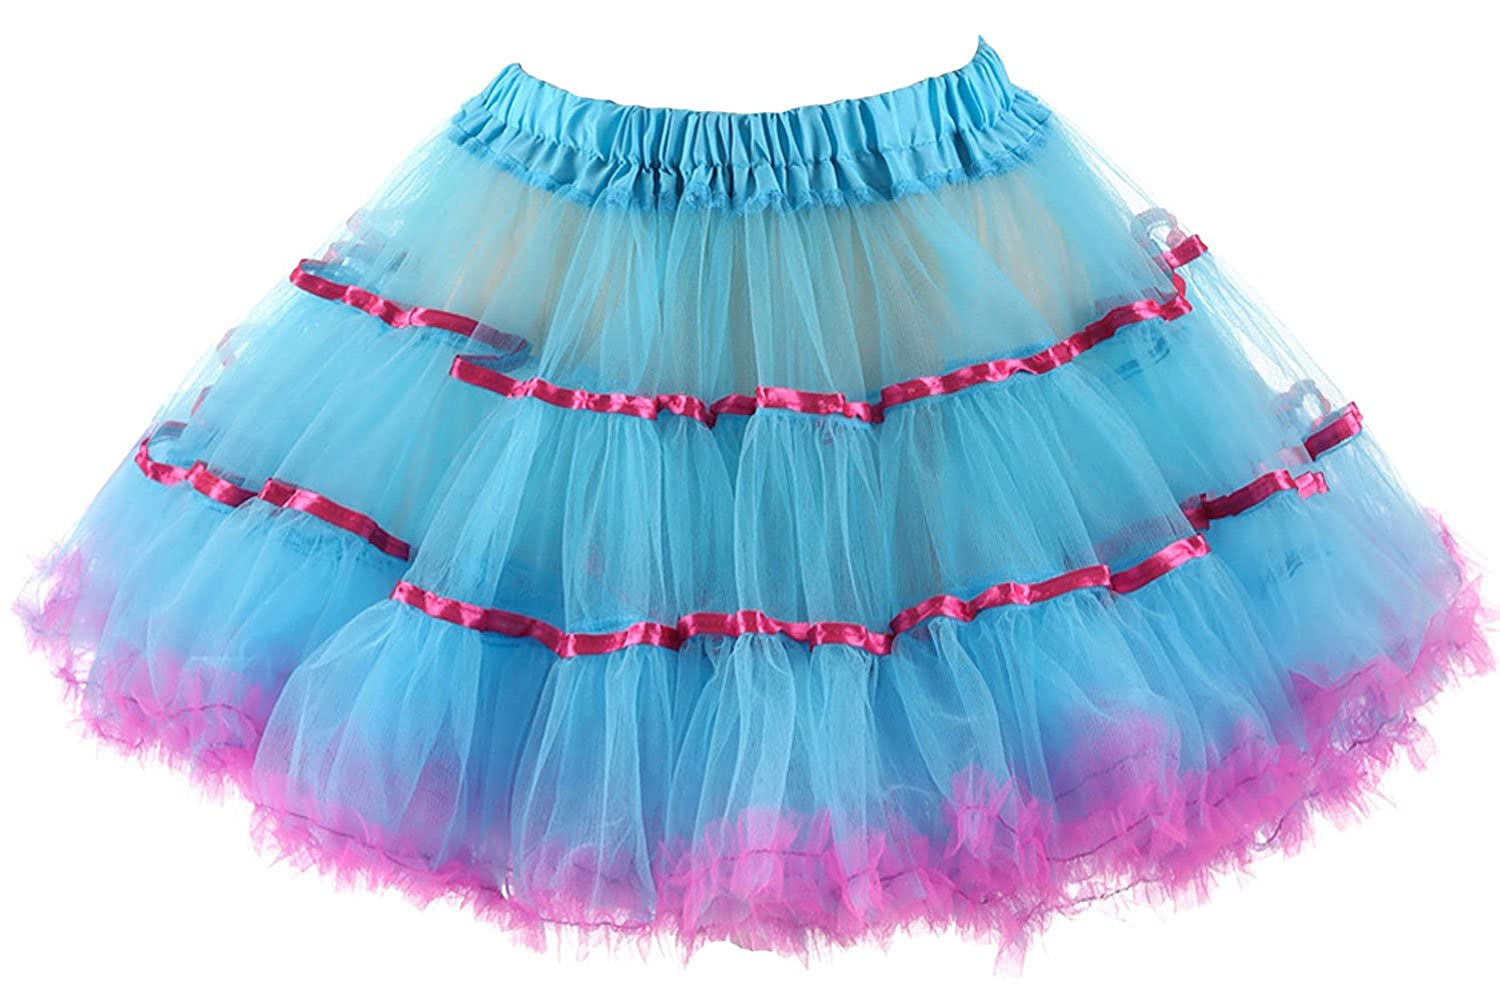 Danadress Women A-Line Multicolor Short Petticoat Crinoline Skirt Slips DANA020-P02